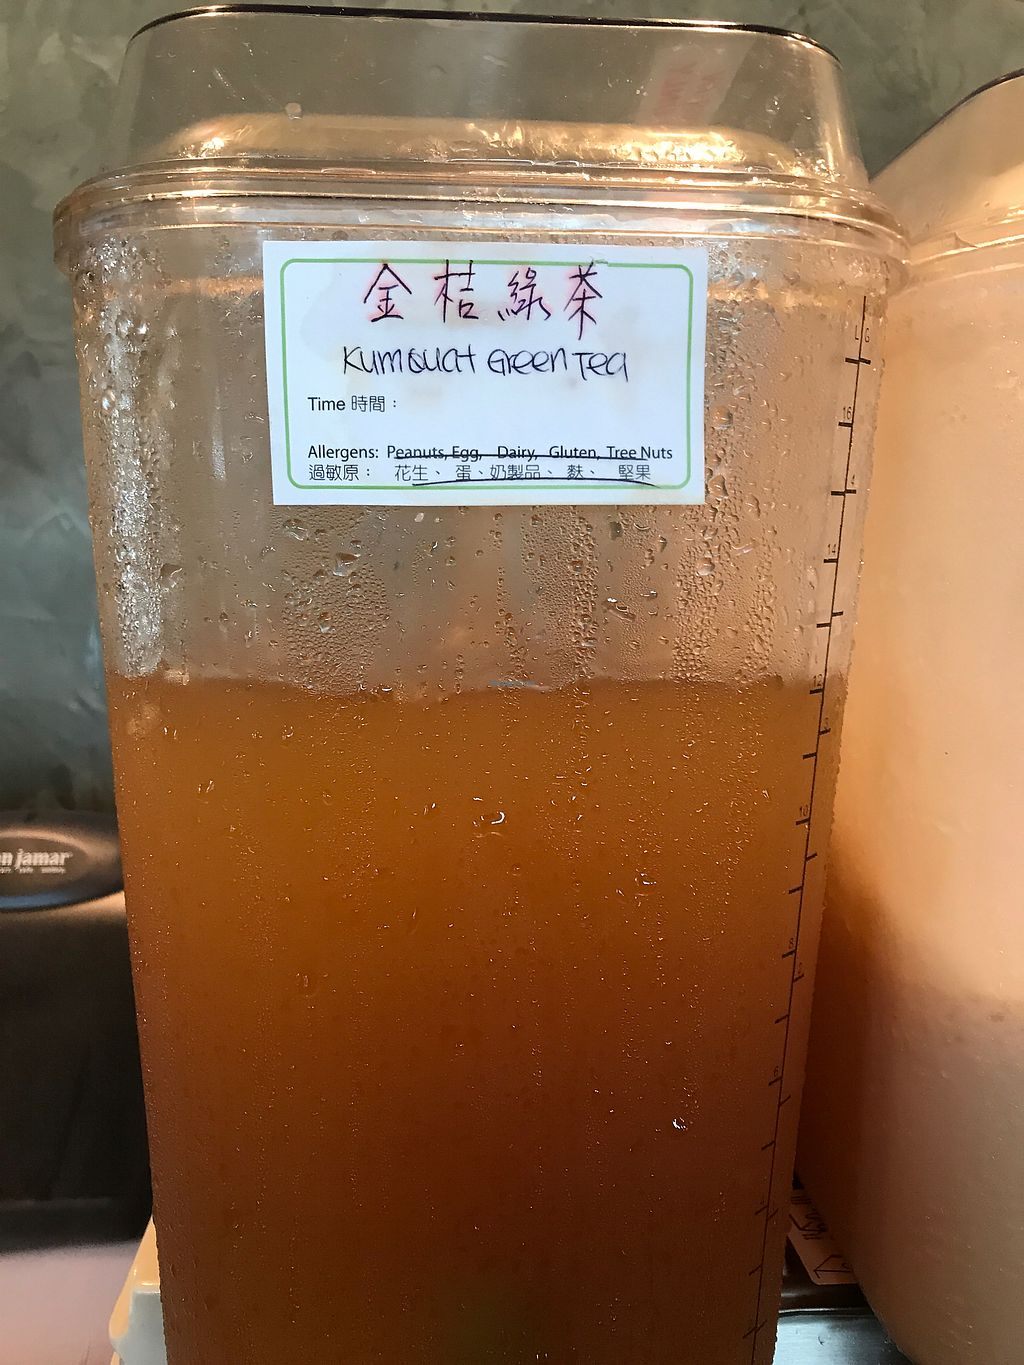 """Photo of Sweet Veggie  by <a href=""""/members/profile/sjberrest"""">sjberrest</a> <br/>Kambucha green tea <br/> March 10, 2018  - <a href='/contact/abuse/image/111007/369072'>Report</a>"""